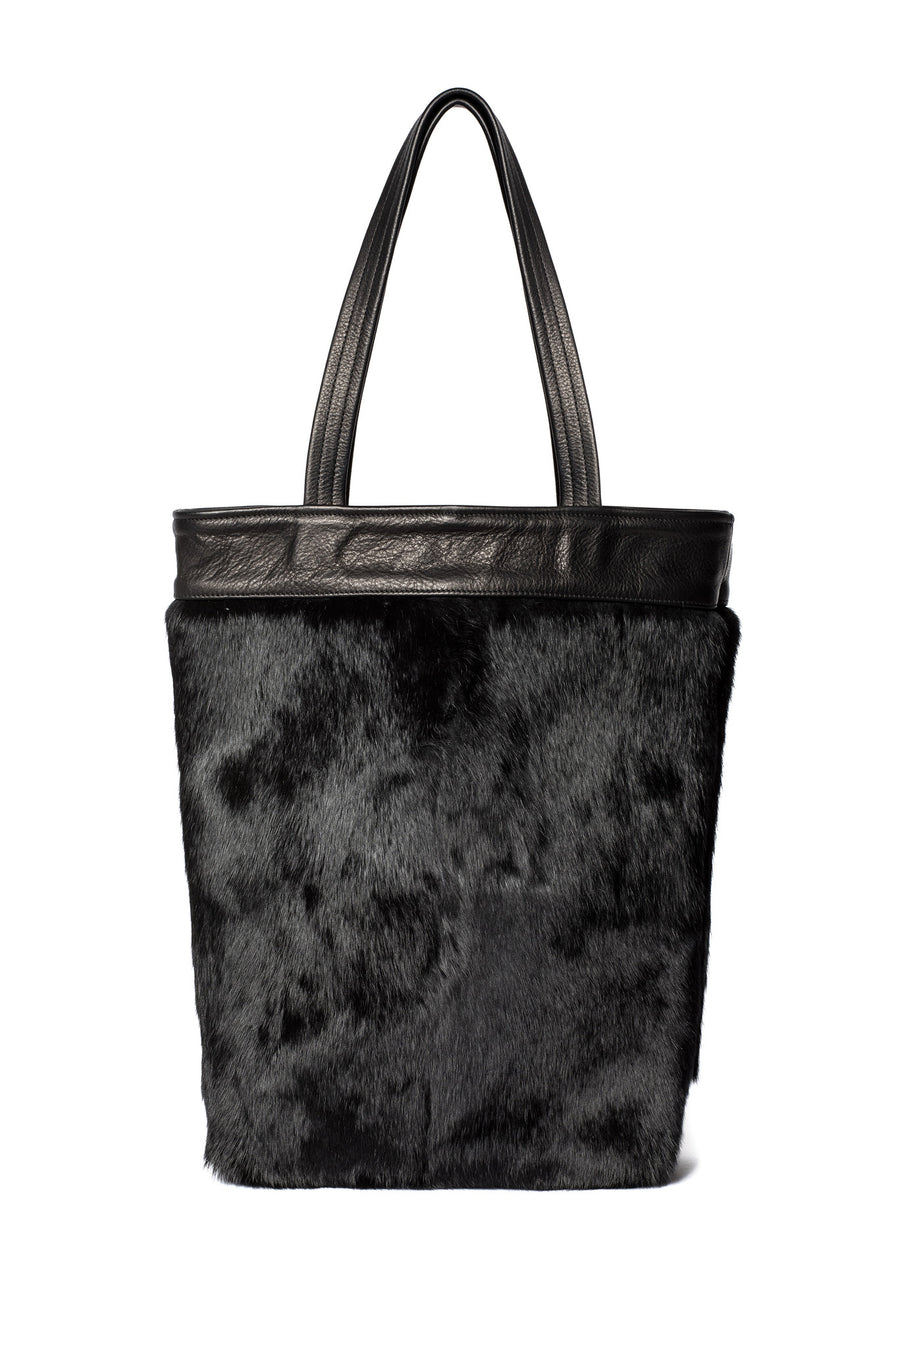 One-of-a-Kind Black Rabbit Fur Tote Black Leather Wendy Nichol Luxury Handbag Purse Bag Designer handmade in NYC New York City one of a kind Durable Handle strap Interior Pocket High Quality Leather